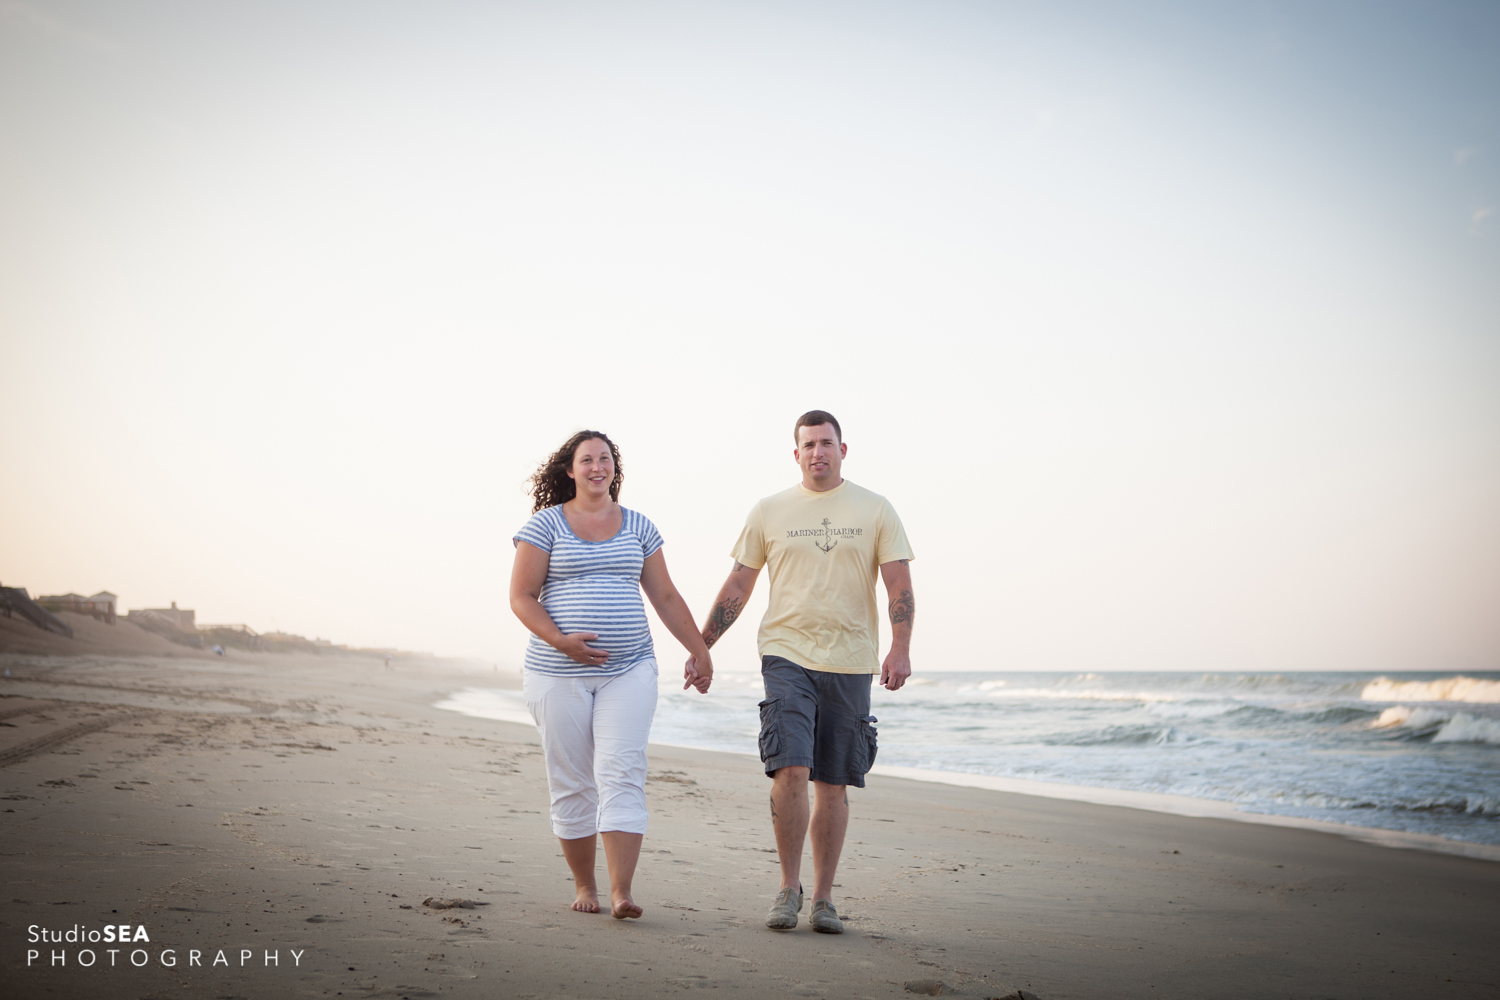 StudioSea Photography Outer Banks Family Portrait